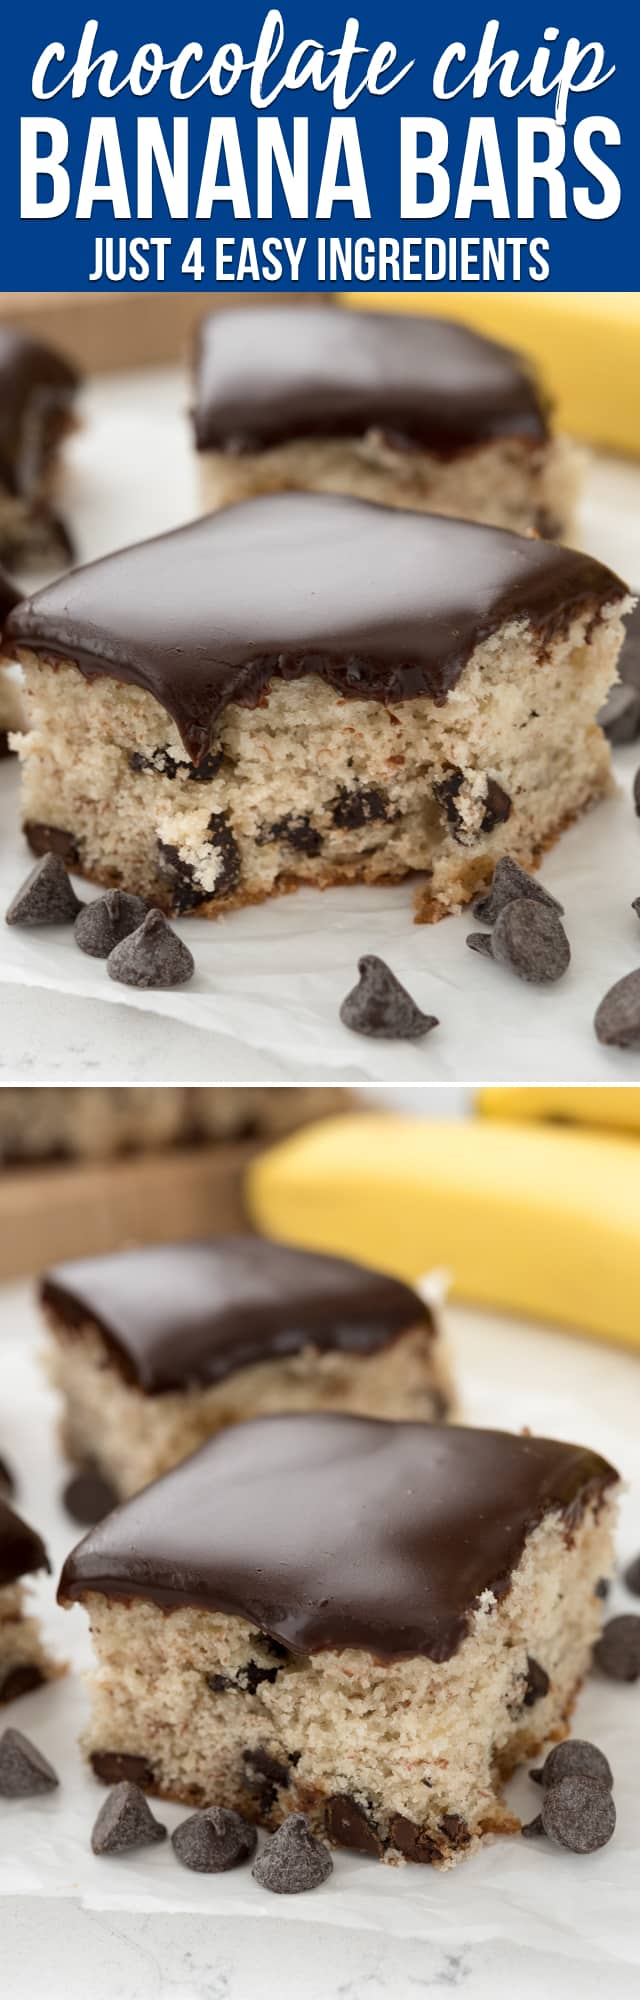 These Chocolate Chip Banana Bars are SO easy to make and have just 4 ingredients. They're great for using up overripe bananas! Add some chocolate and you have a delicious banana dessert recipe.